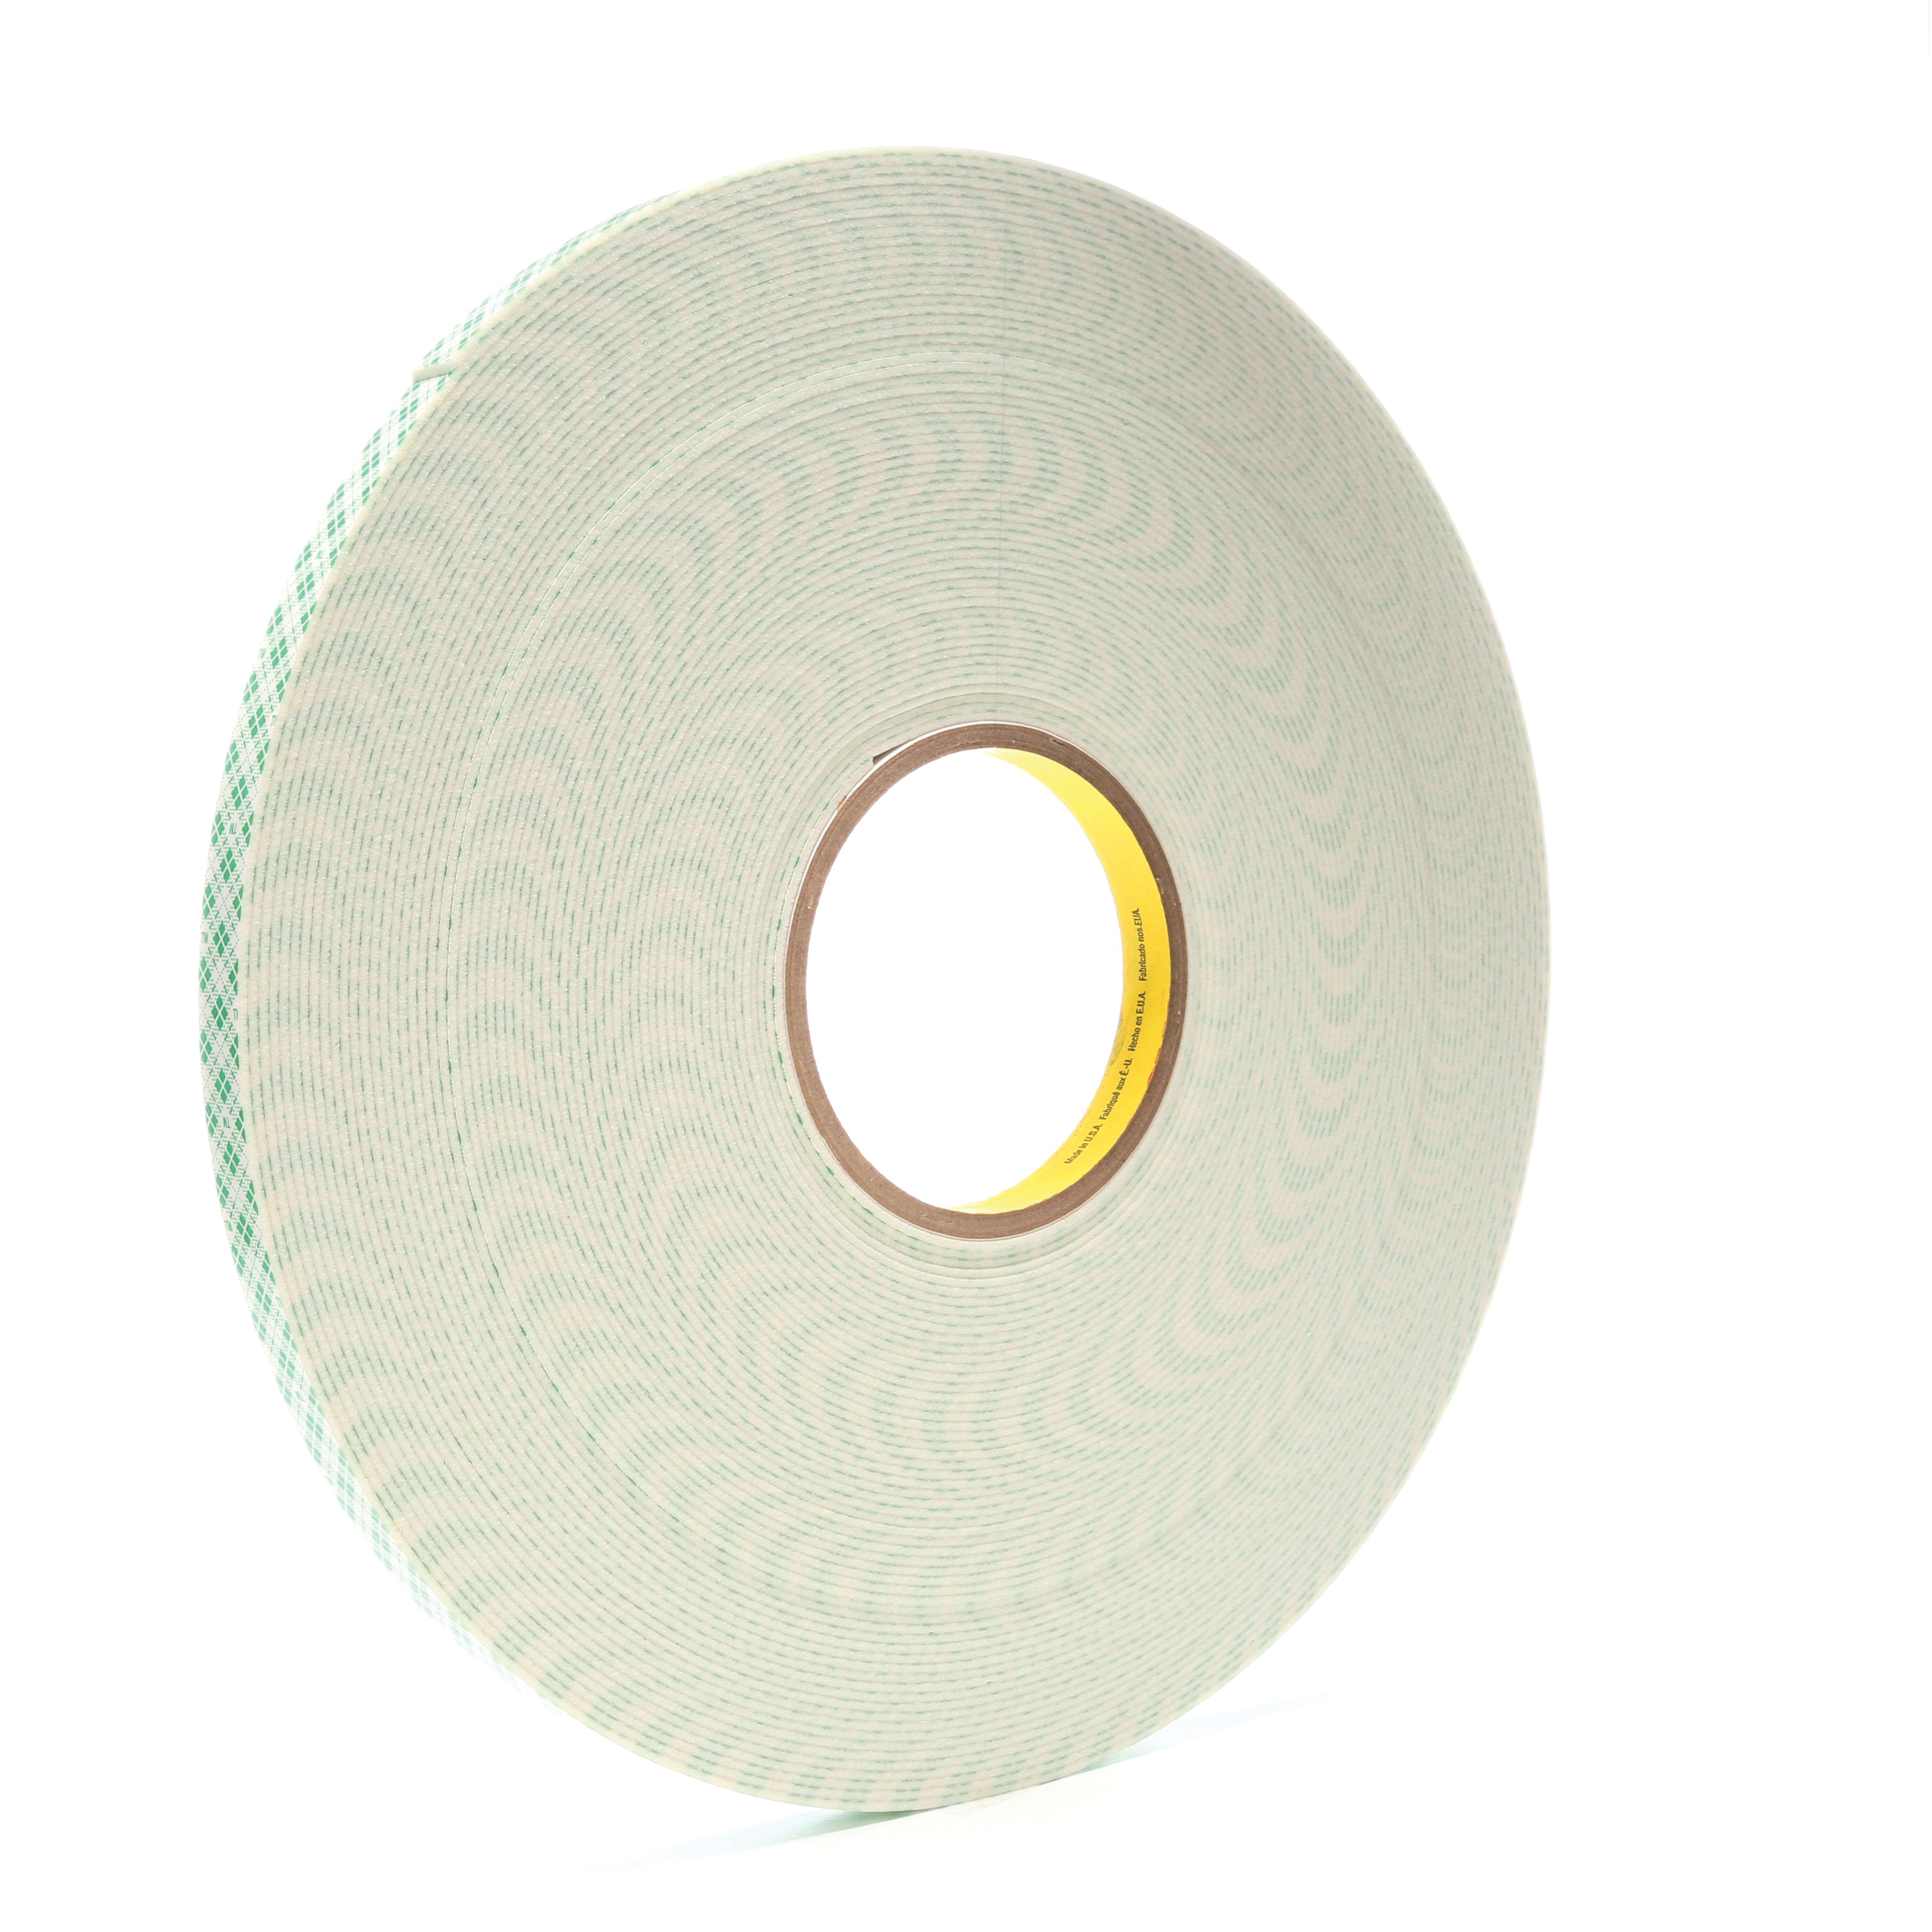 3M™ 021200-17054 Double Coated Tape, 36 yd L x 1/2 in W, 62 mil THK, Acrylic Adhesive, Urethane Foam Backing, Off-White